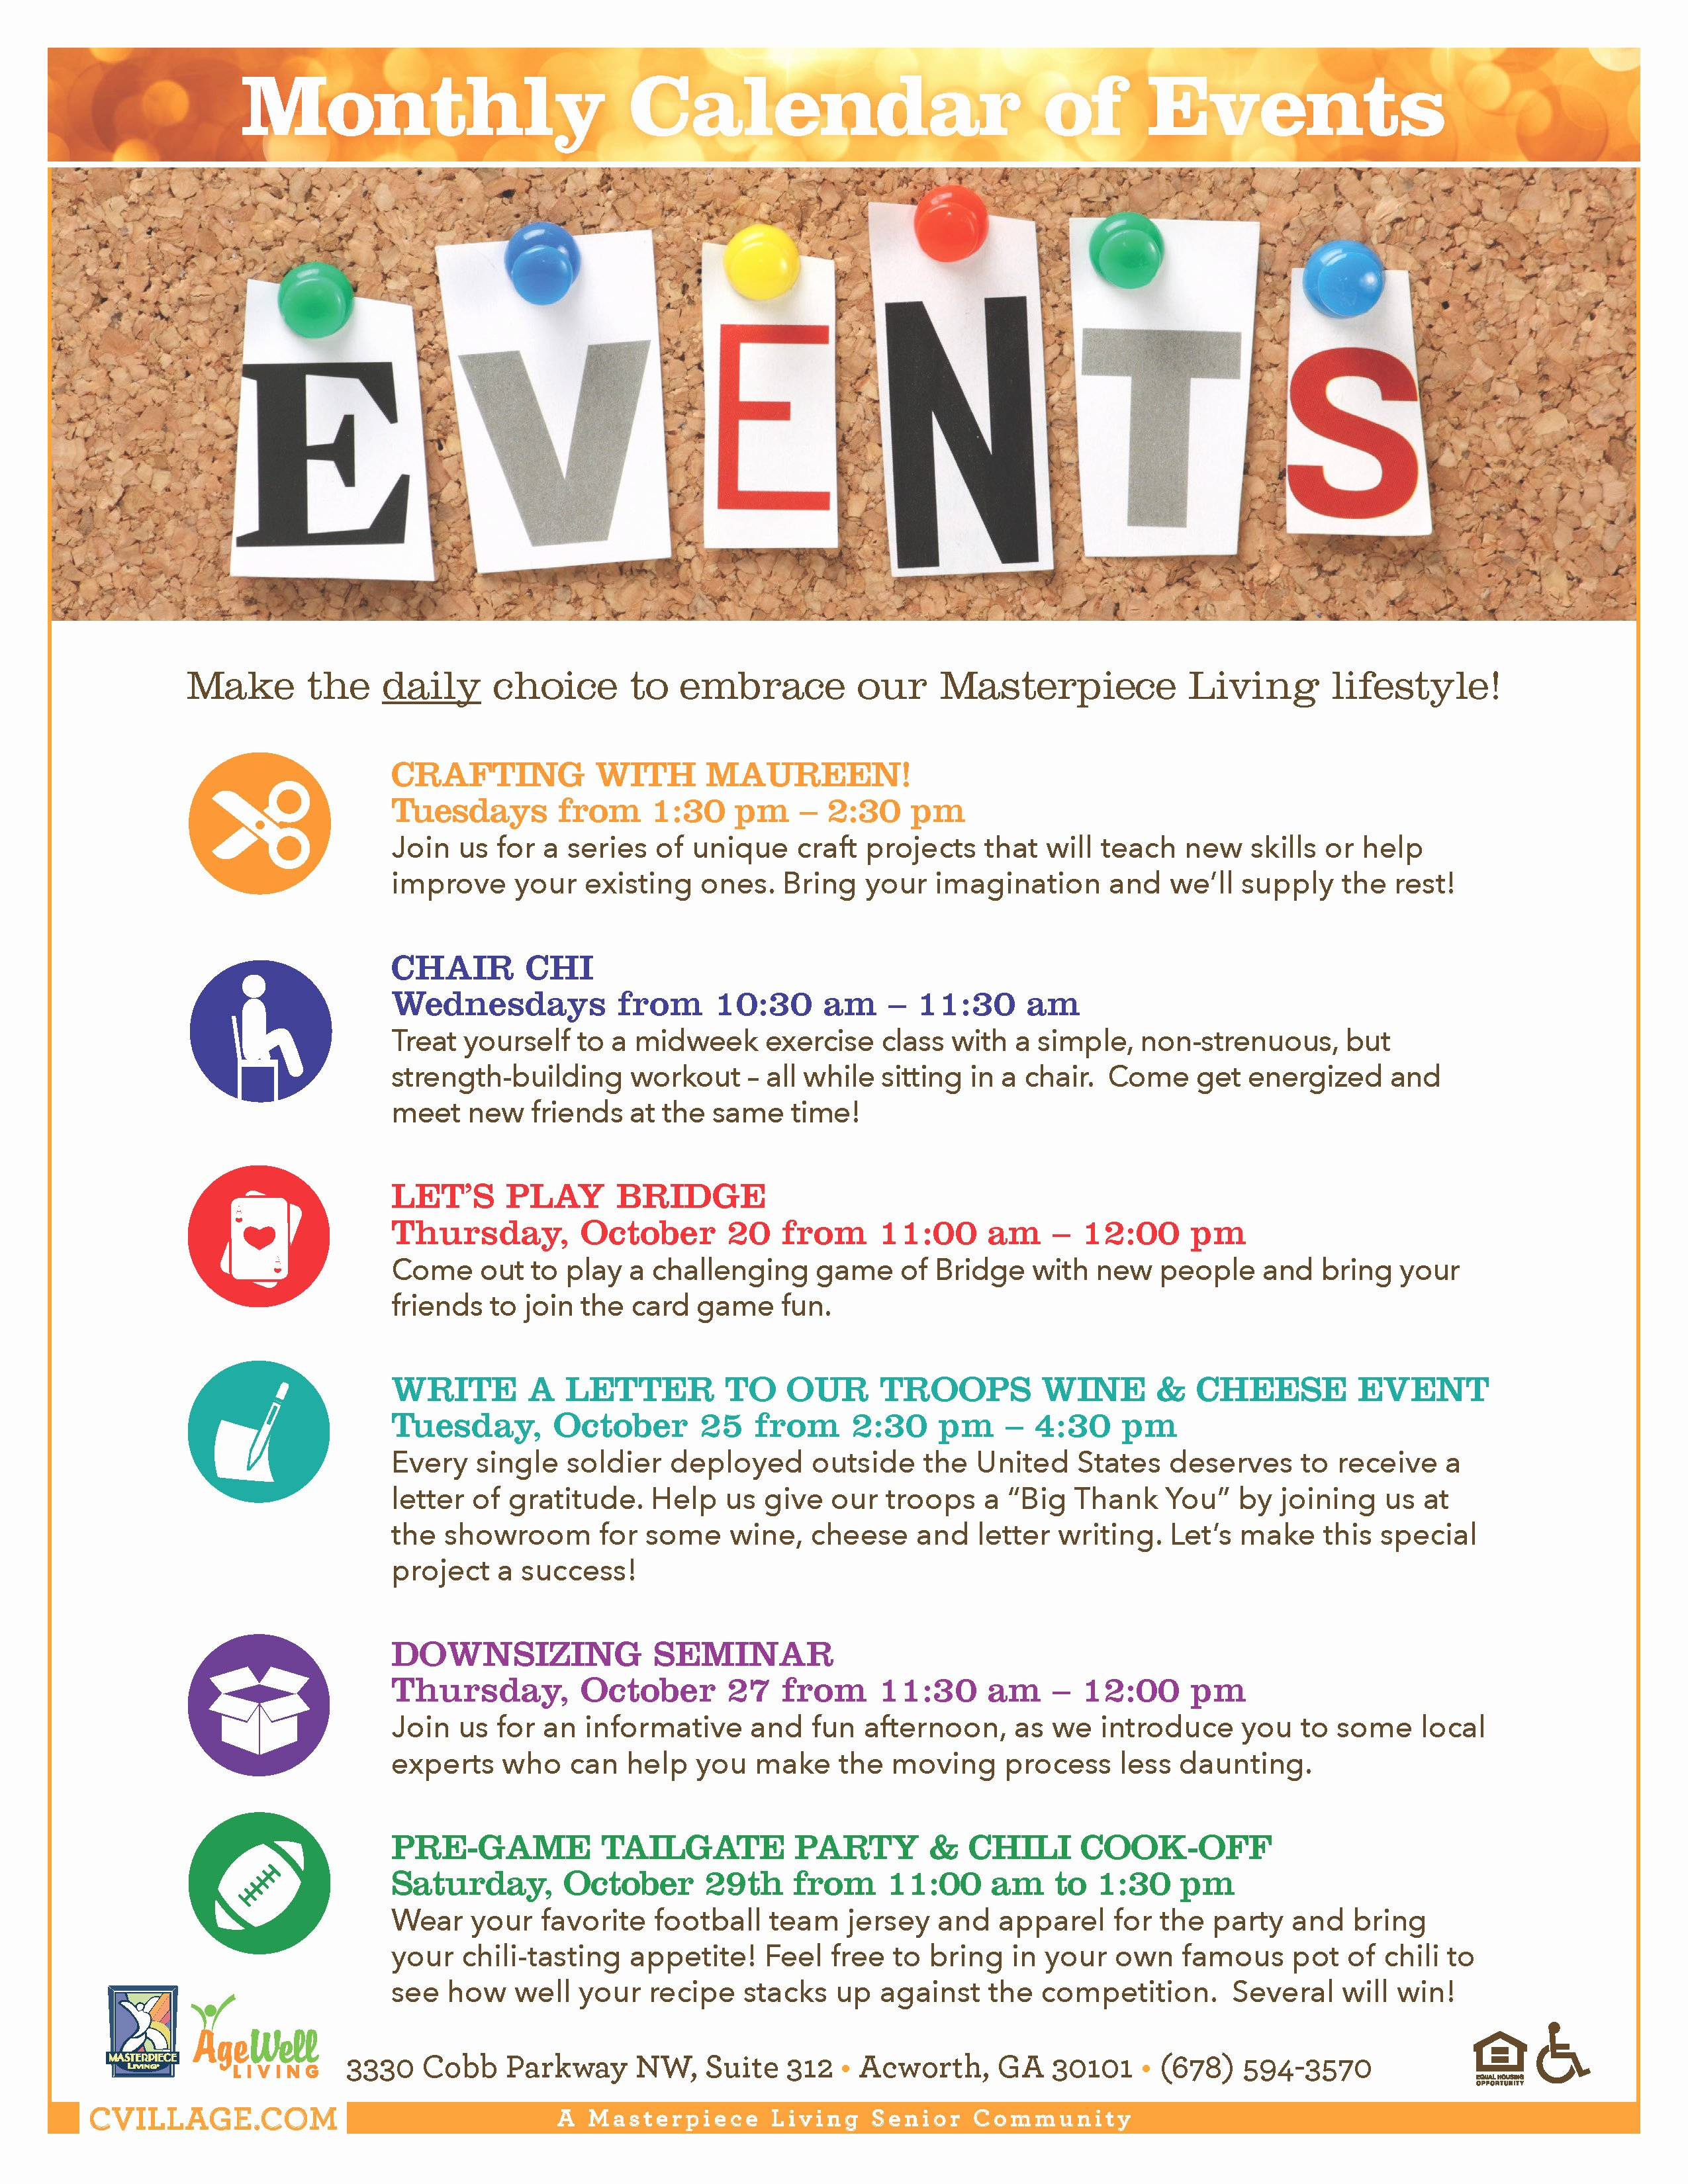 Calendar Of events Template Lovely Celebration Village Write A Letter to Our Troops Campaign